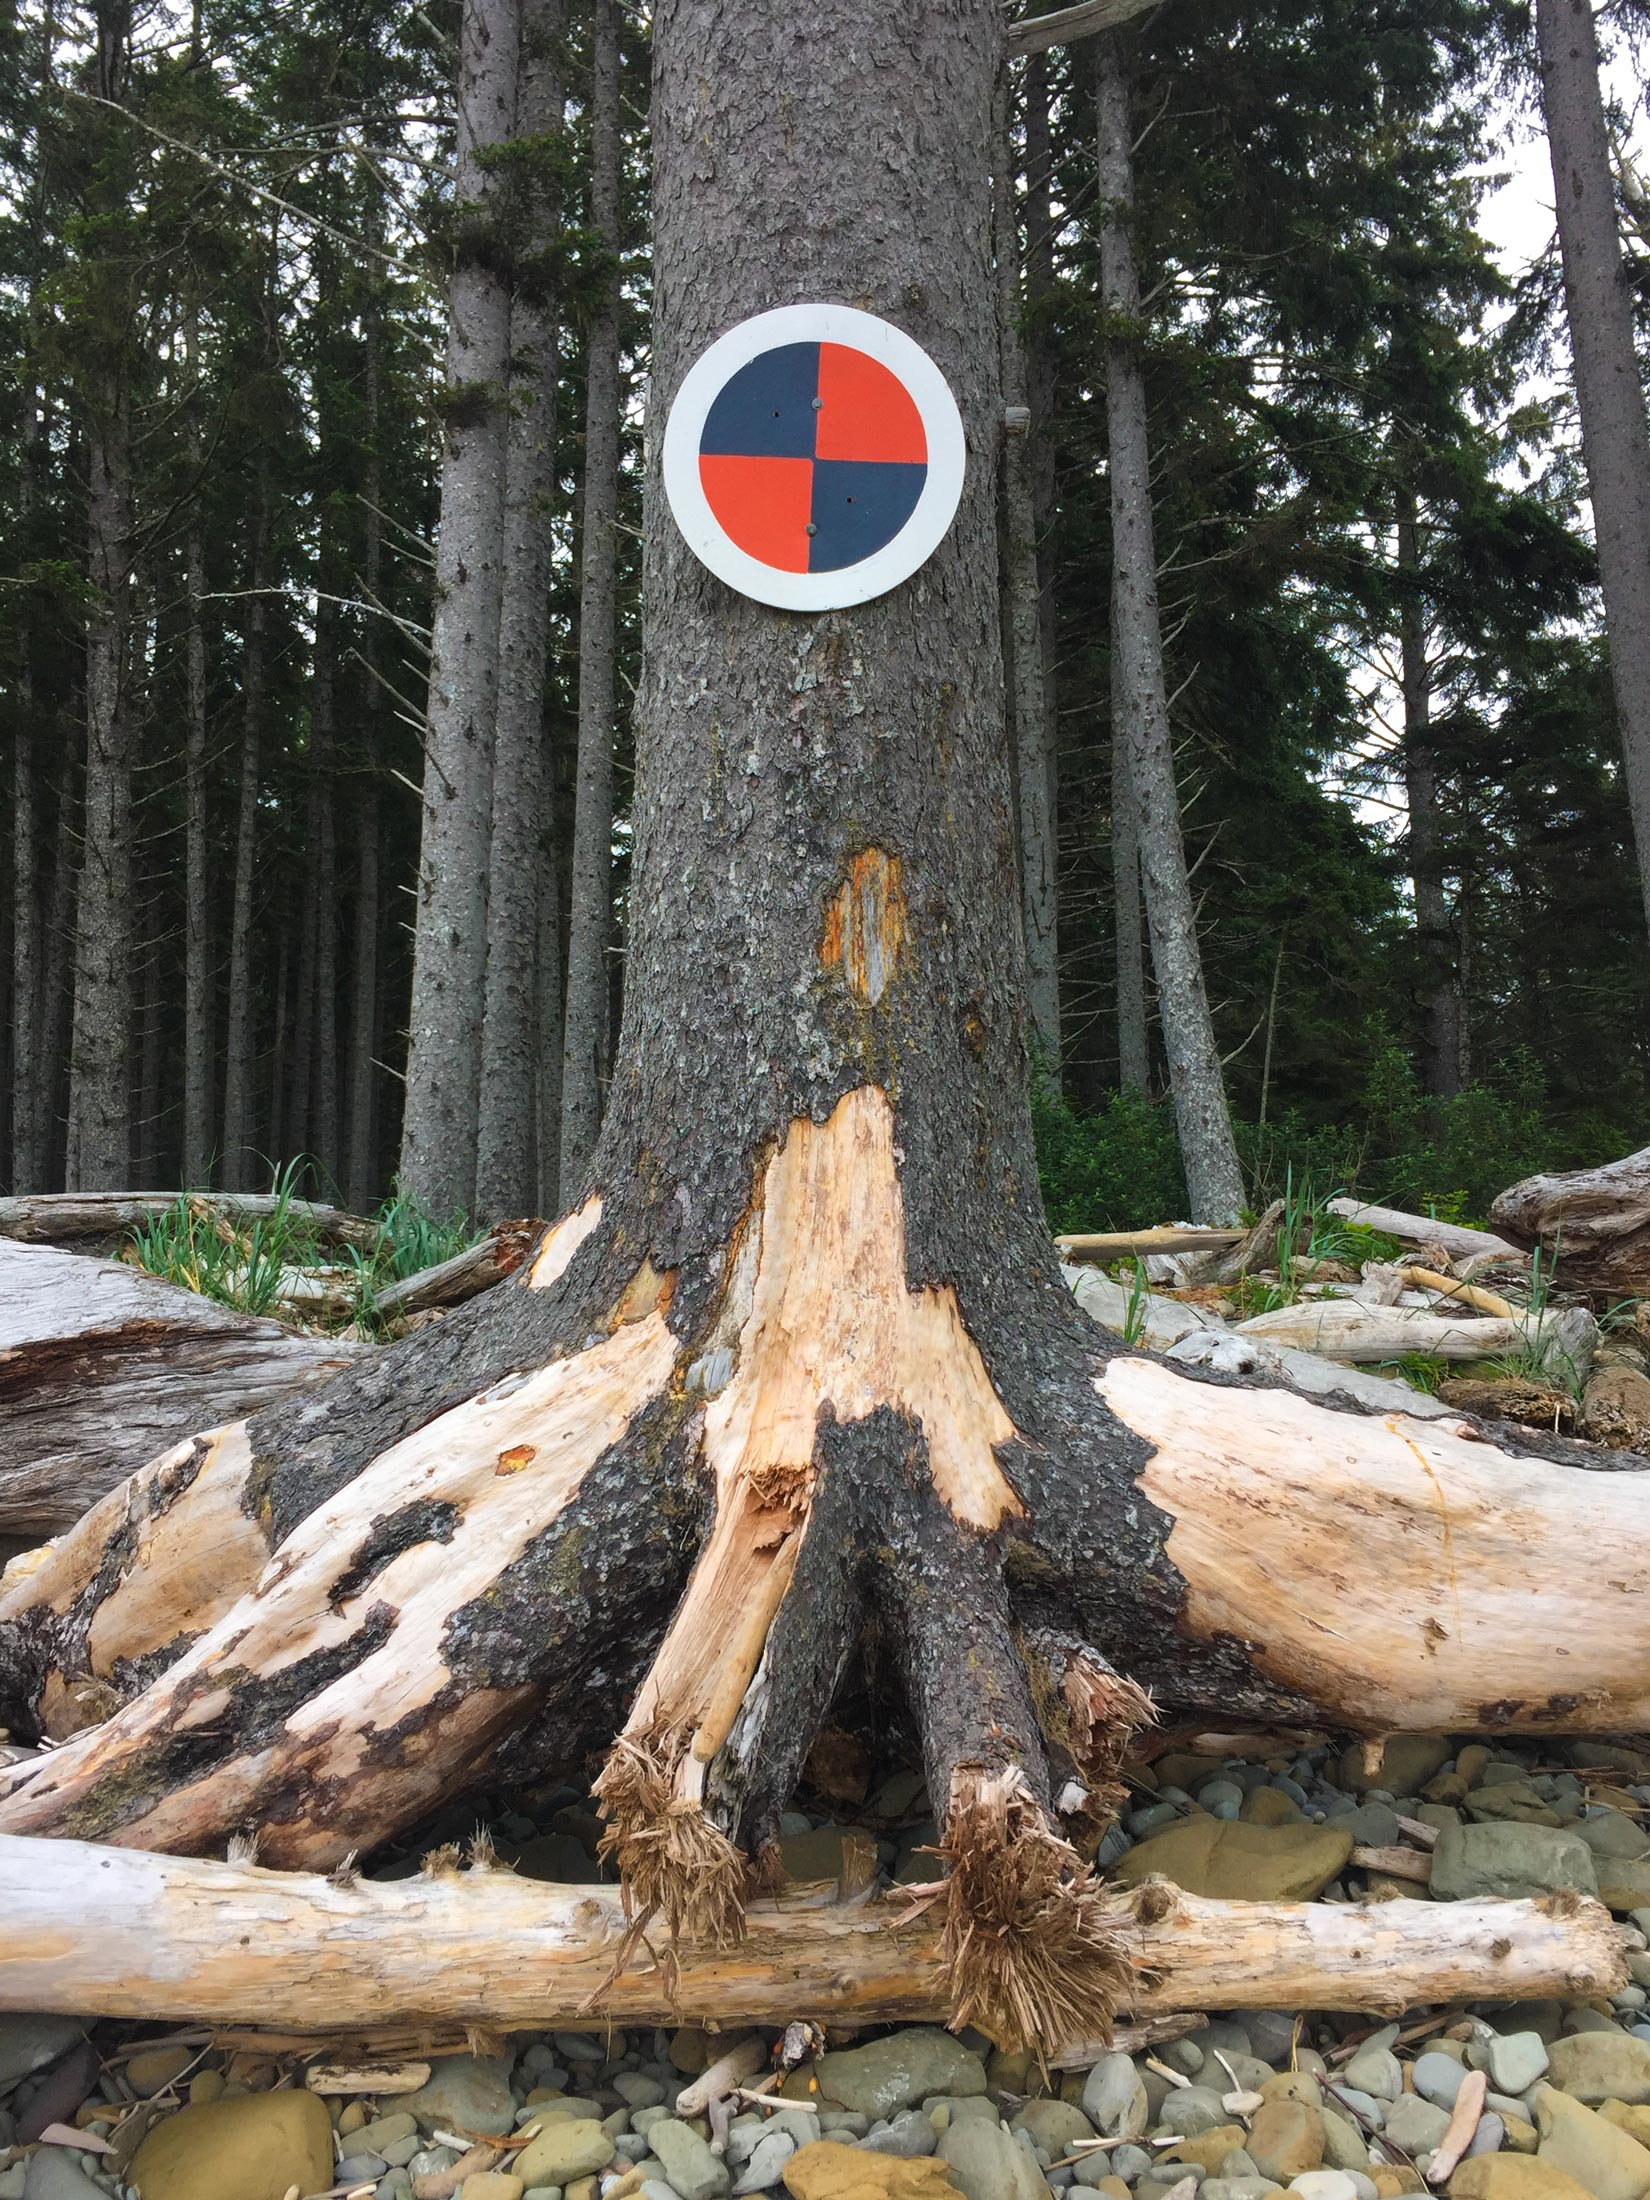 Tsunami symbol on tree in Olympic National Park